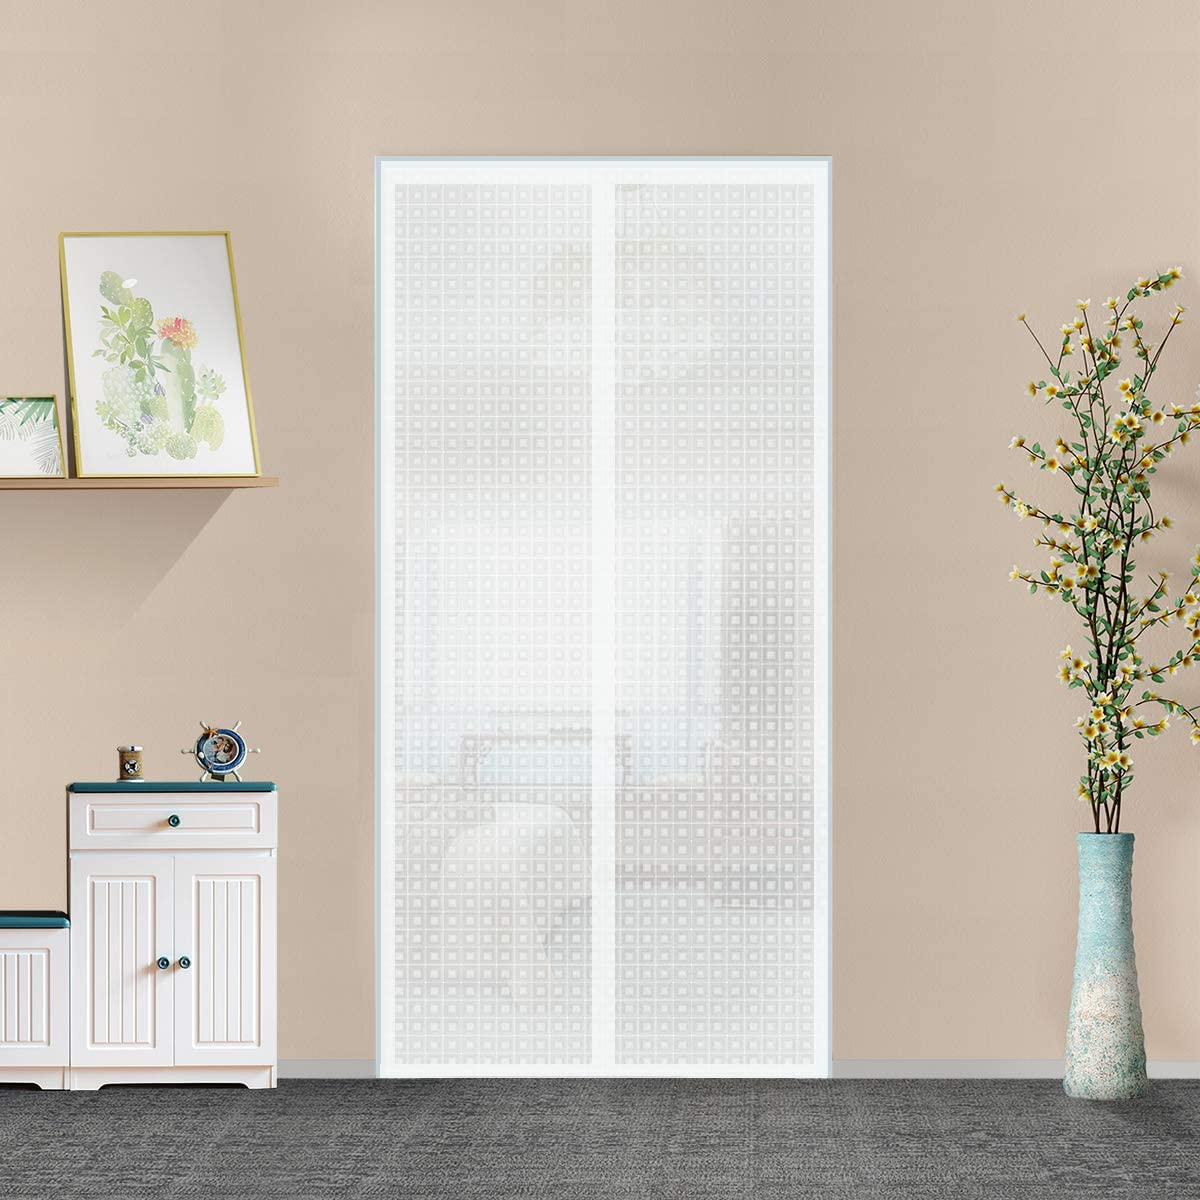 Insulated Door Some Ranking TOP20 reservation Curtain Thermal EVA S Magnetic Self-Sealing